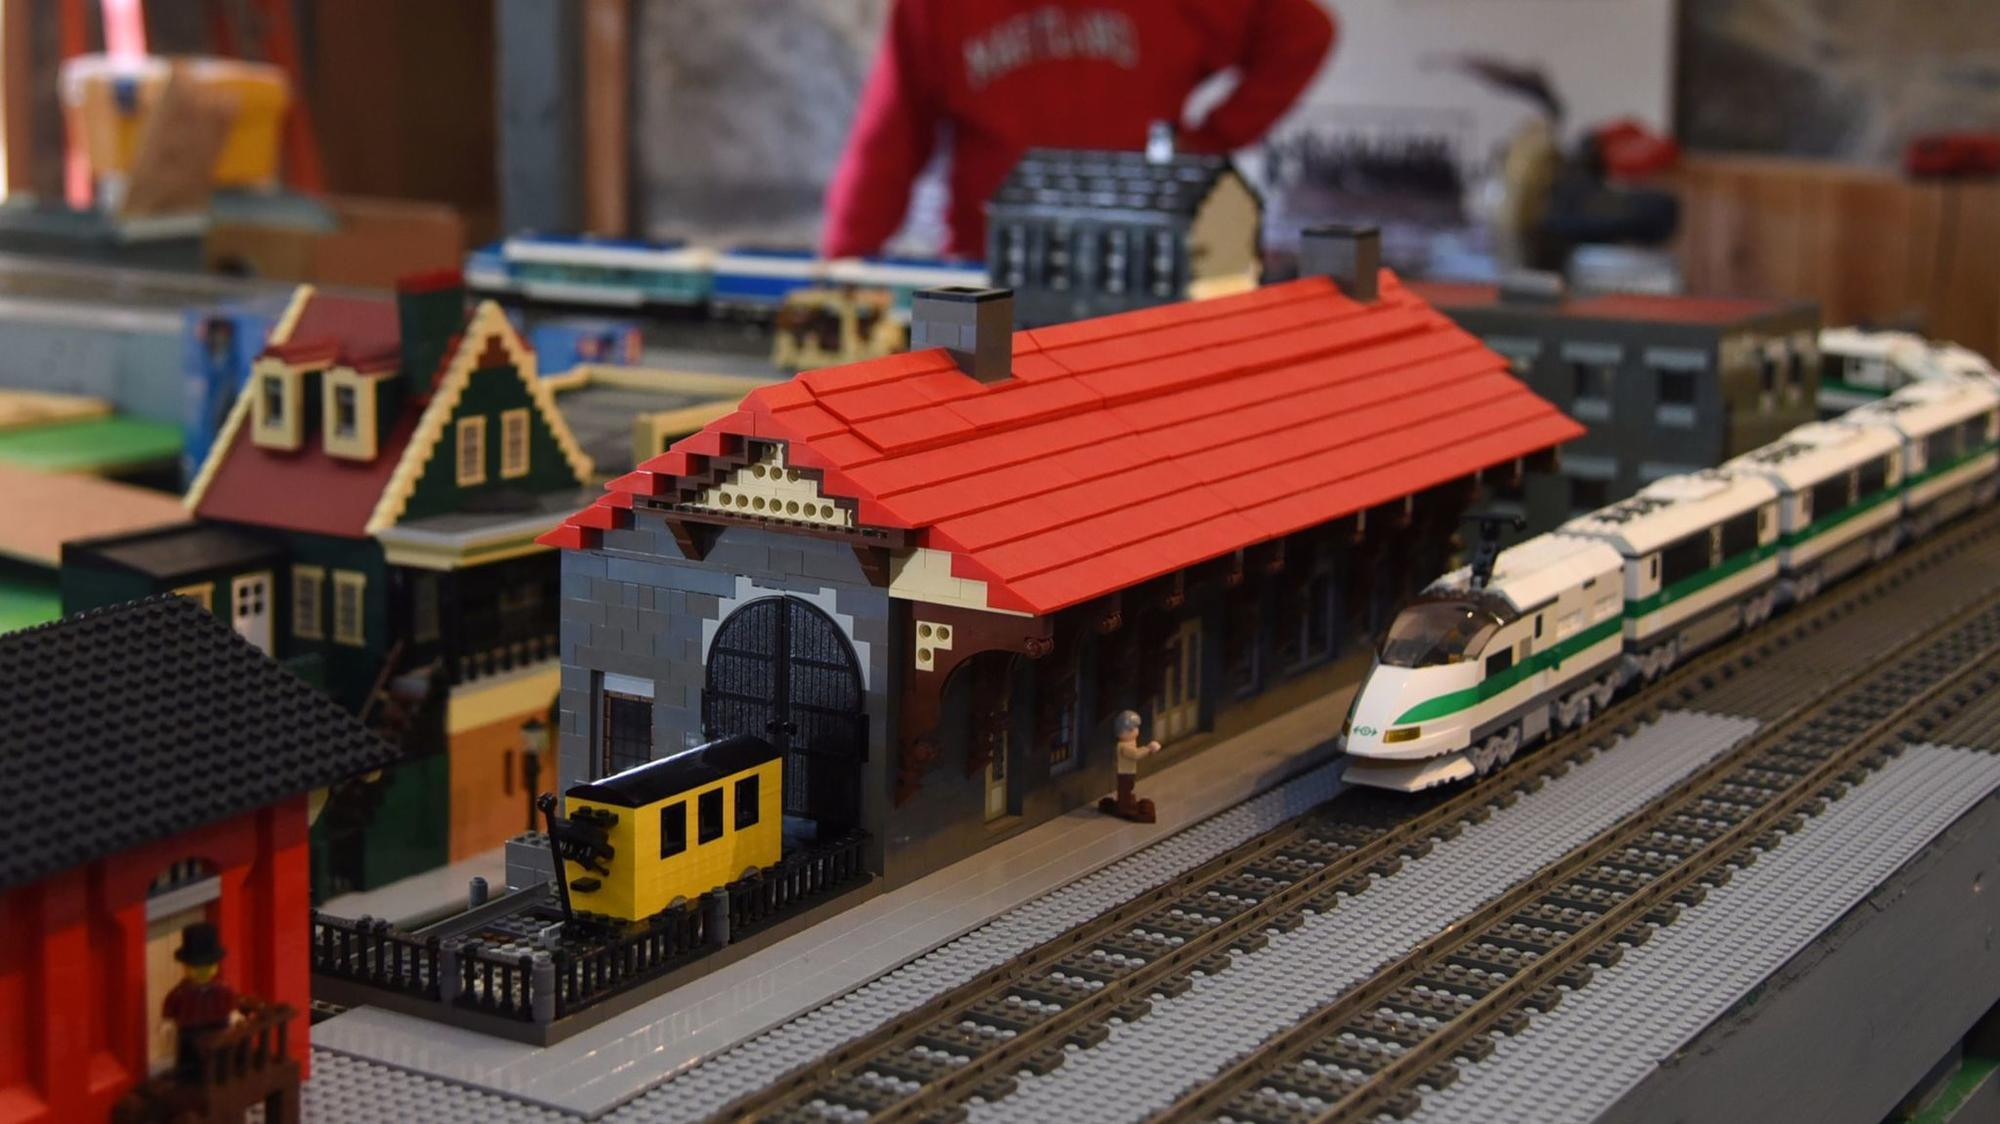 Lego enthusiasts recreate Ellicott City in holiday train garden - Howard County Times